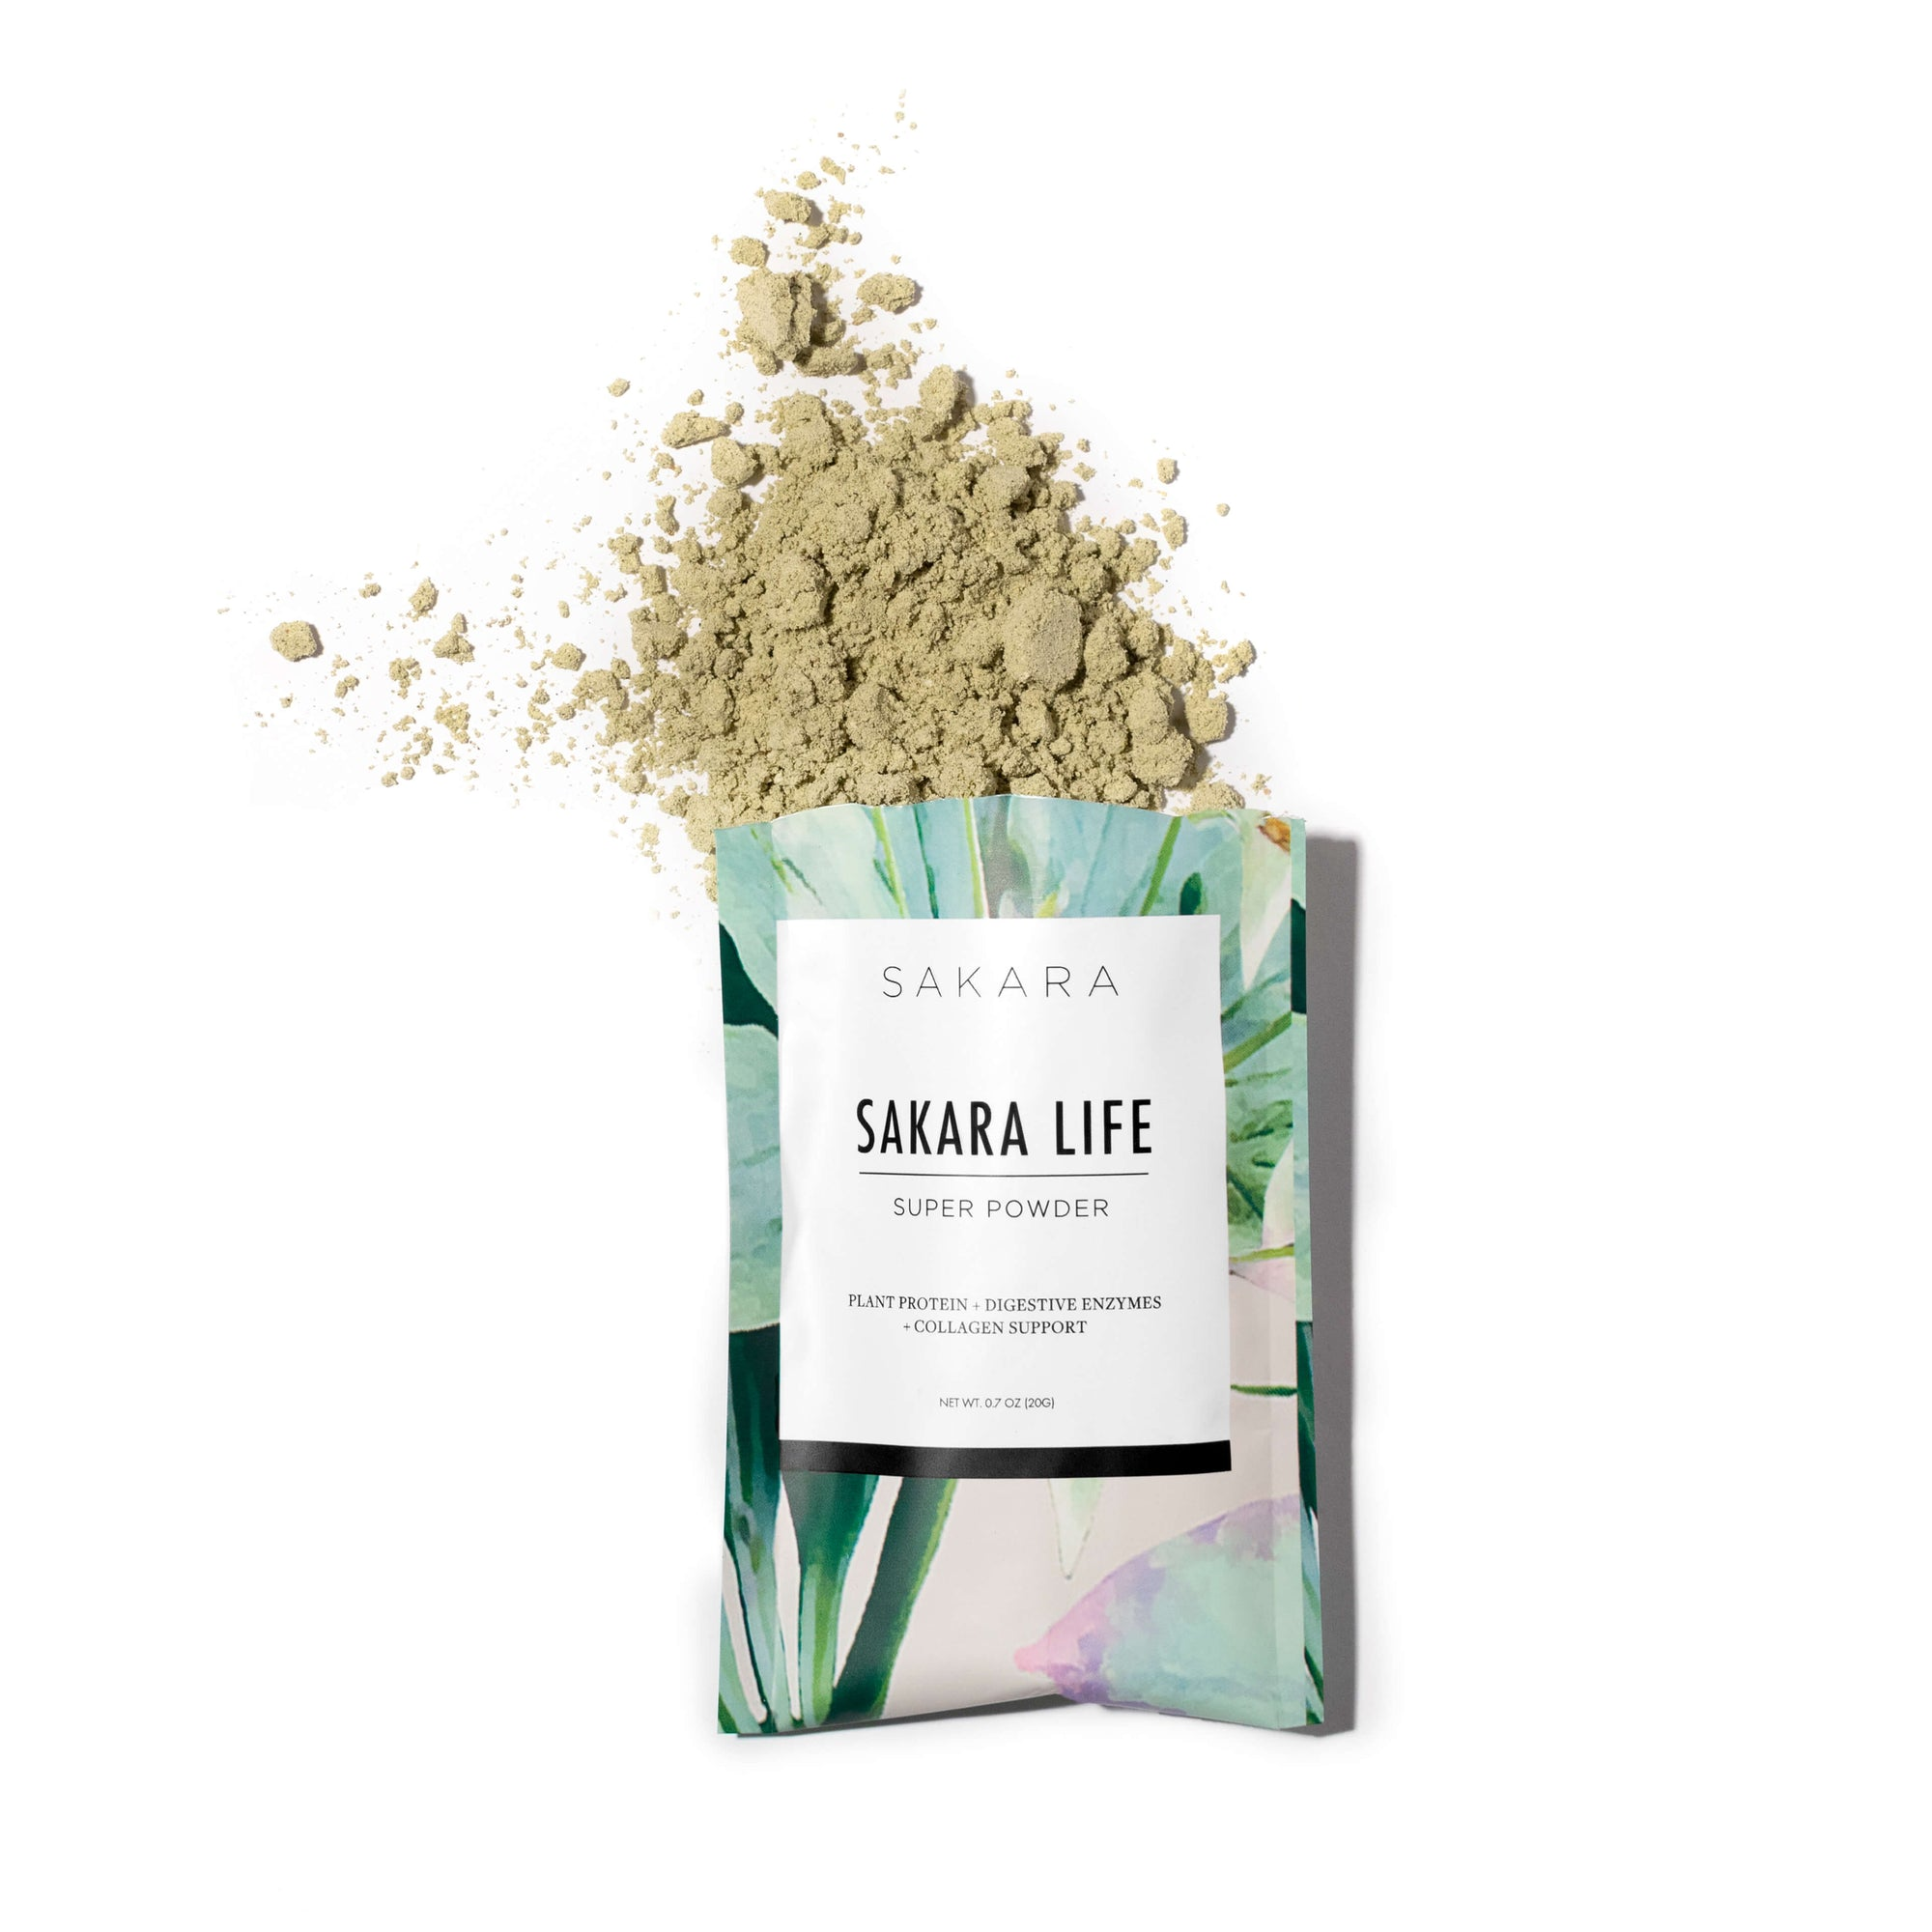 Sakara Life Super Powder - Sakara Life Super Powder